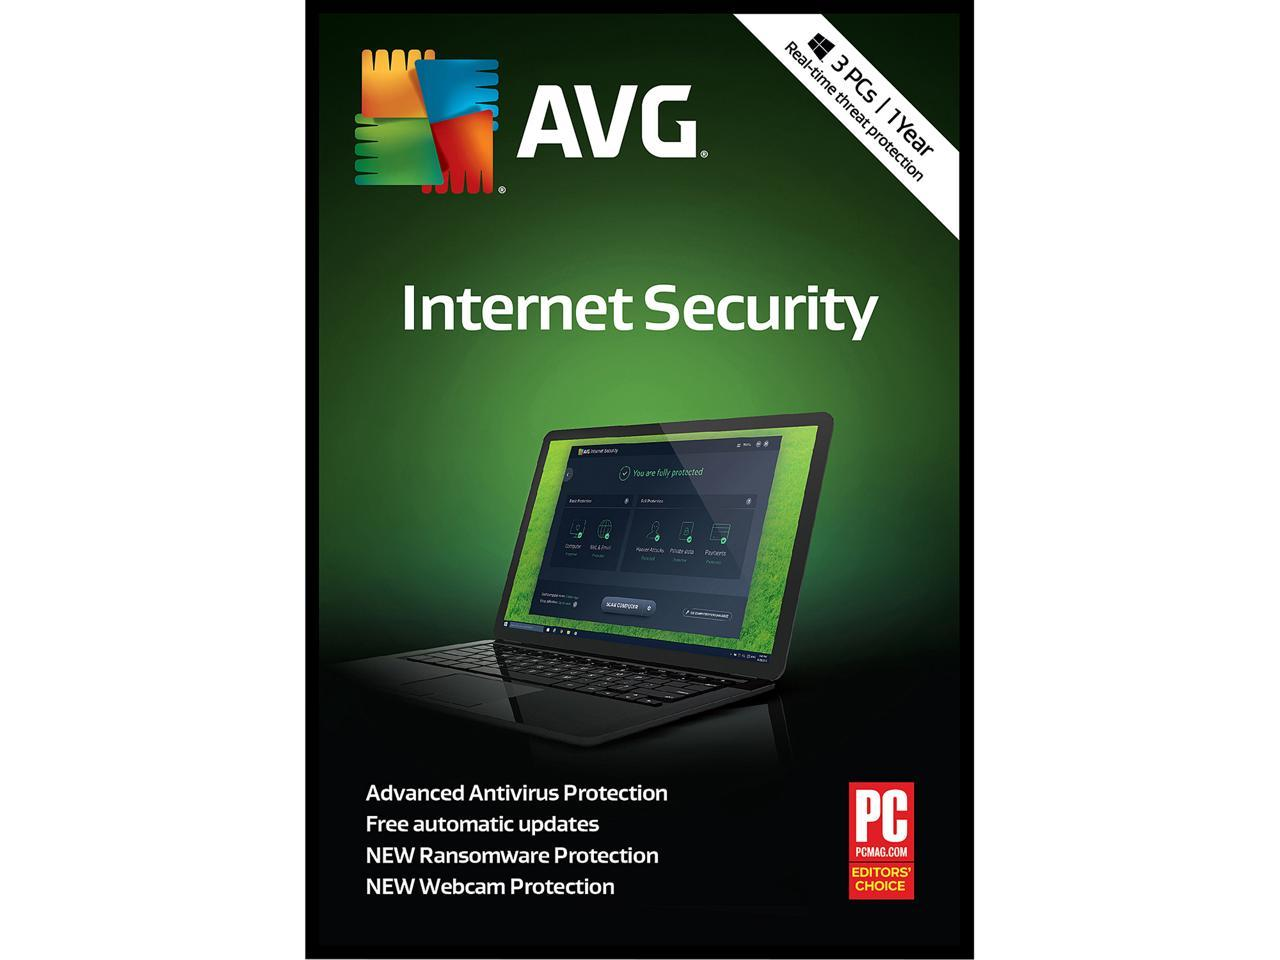 AVG Internet Security 2018 Software